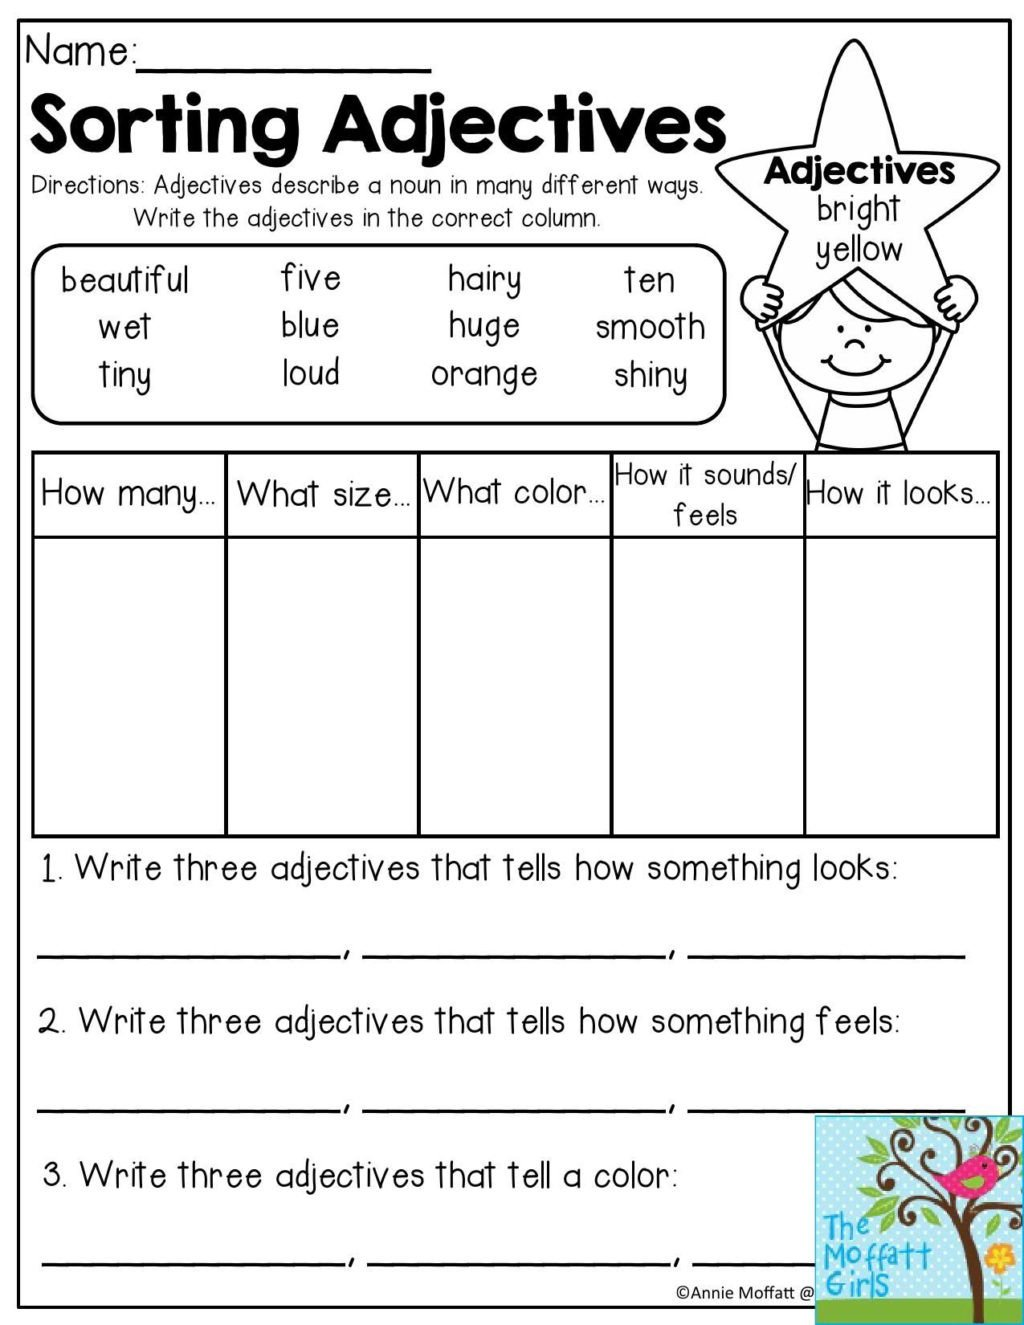 2nd Grade Grammar Worksheets Free Worksheet 2nddemmar Worksheets Worksheet Second Games